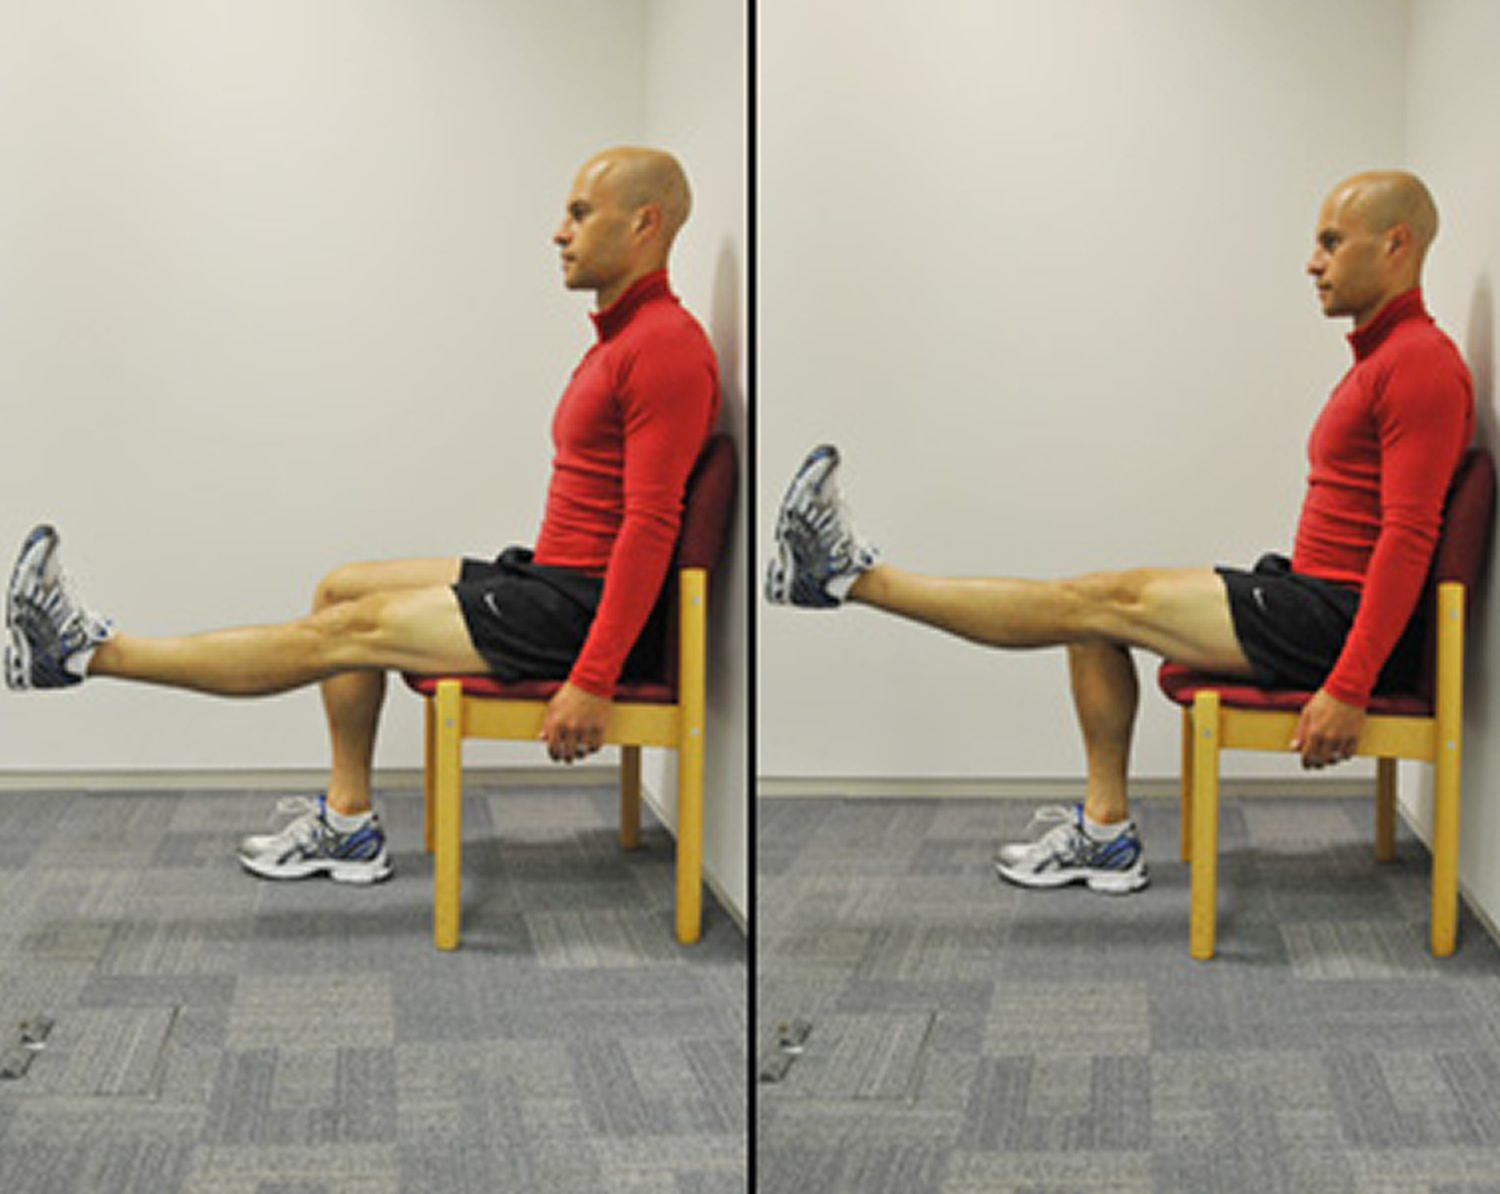 Straight leg raises exercise for knee pain